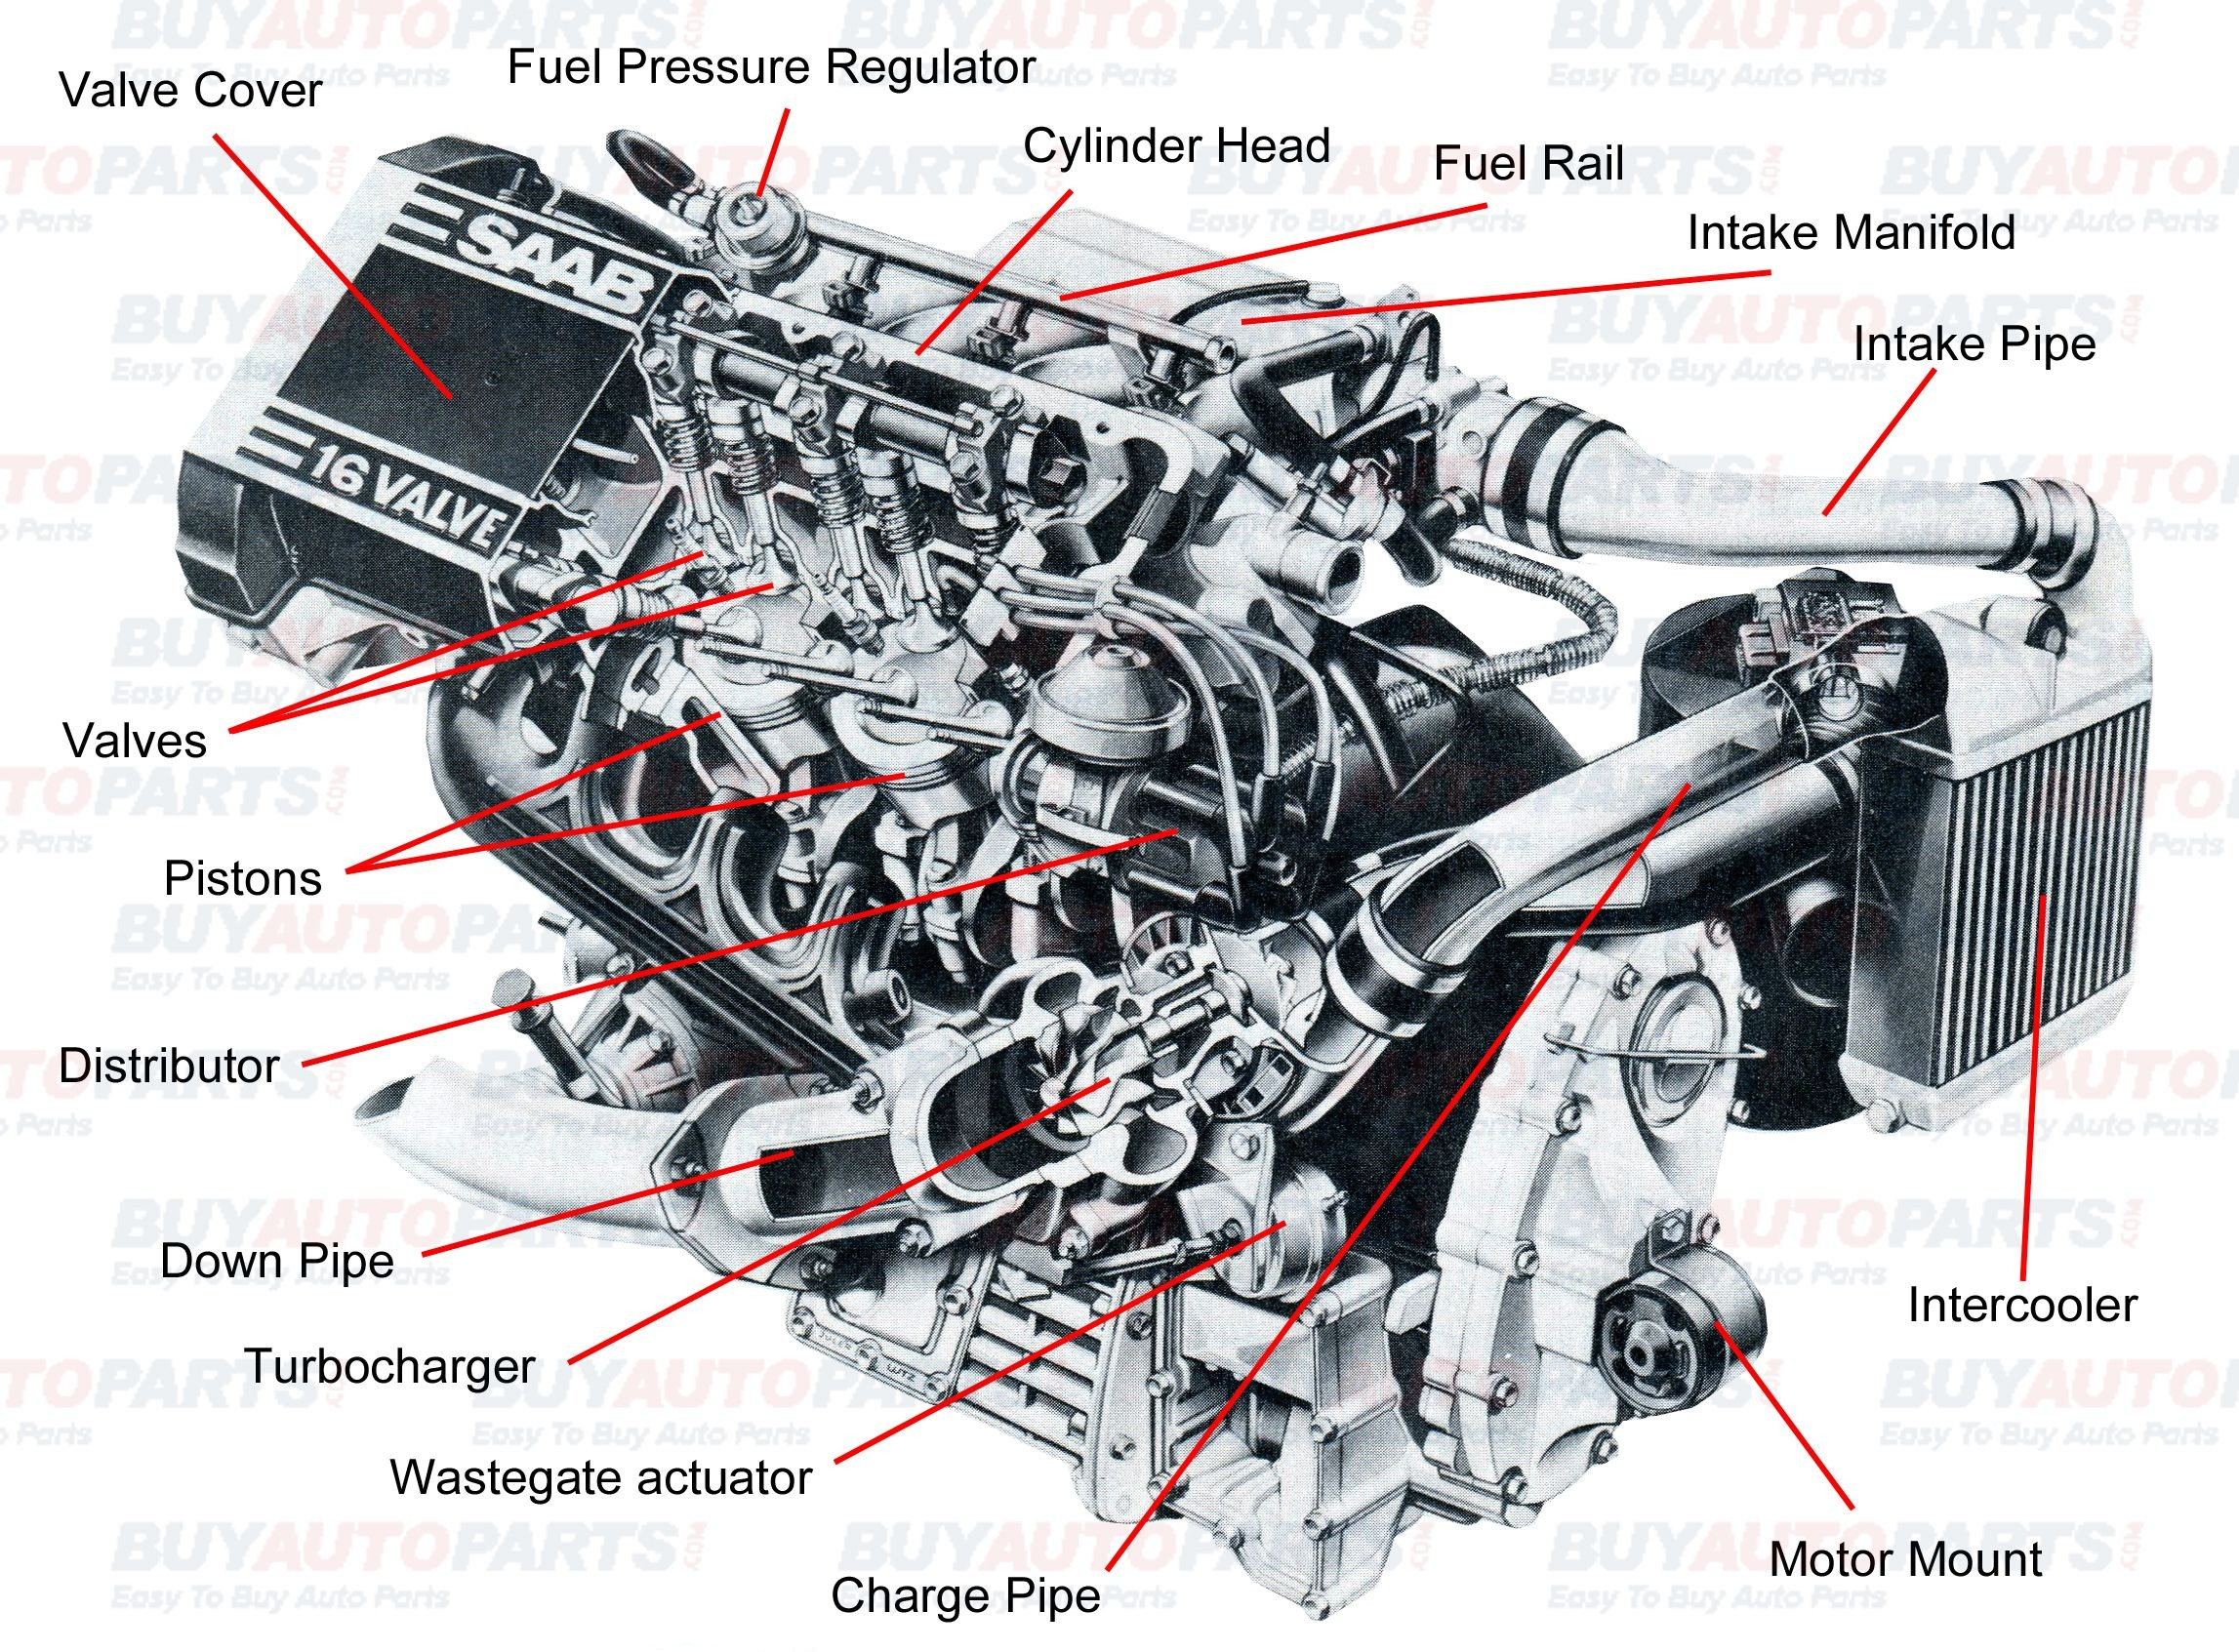 Car Alternator Diagram Pin by Jimmiejanet Testellamwfz On What Does An Engine with Turbo Of Car Alternator Diagram Diagram Of G Clamp – Electrical Wiring Diagram software